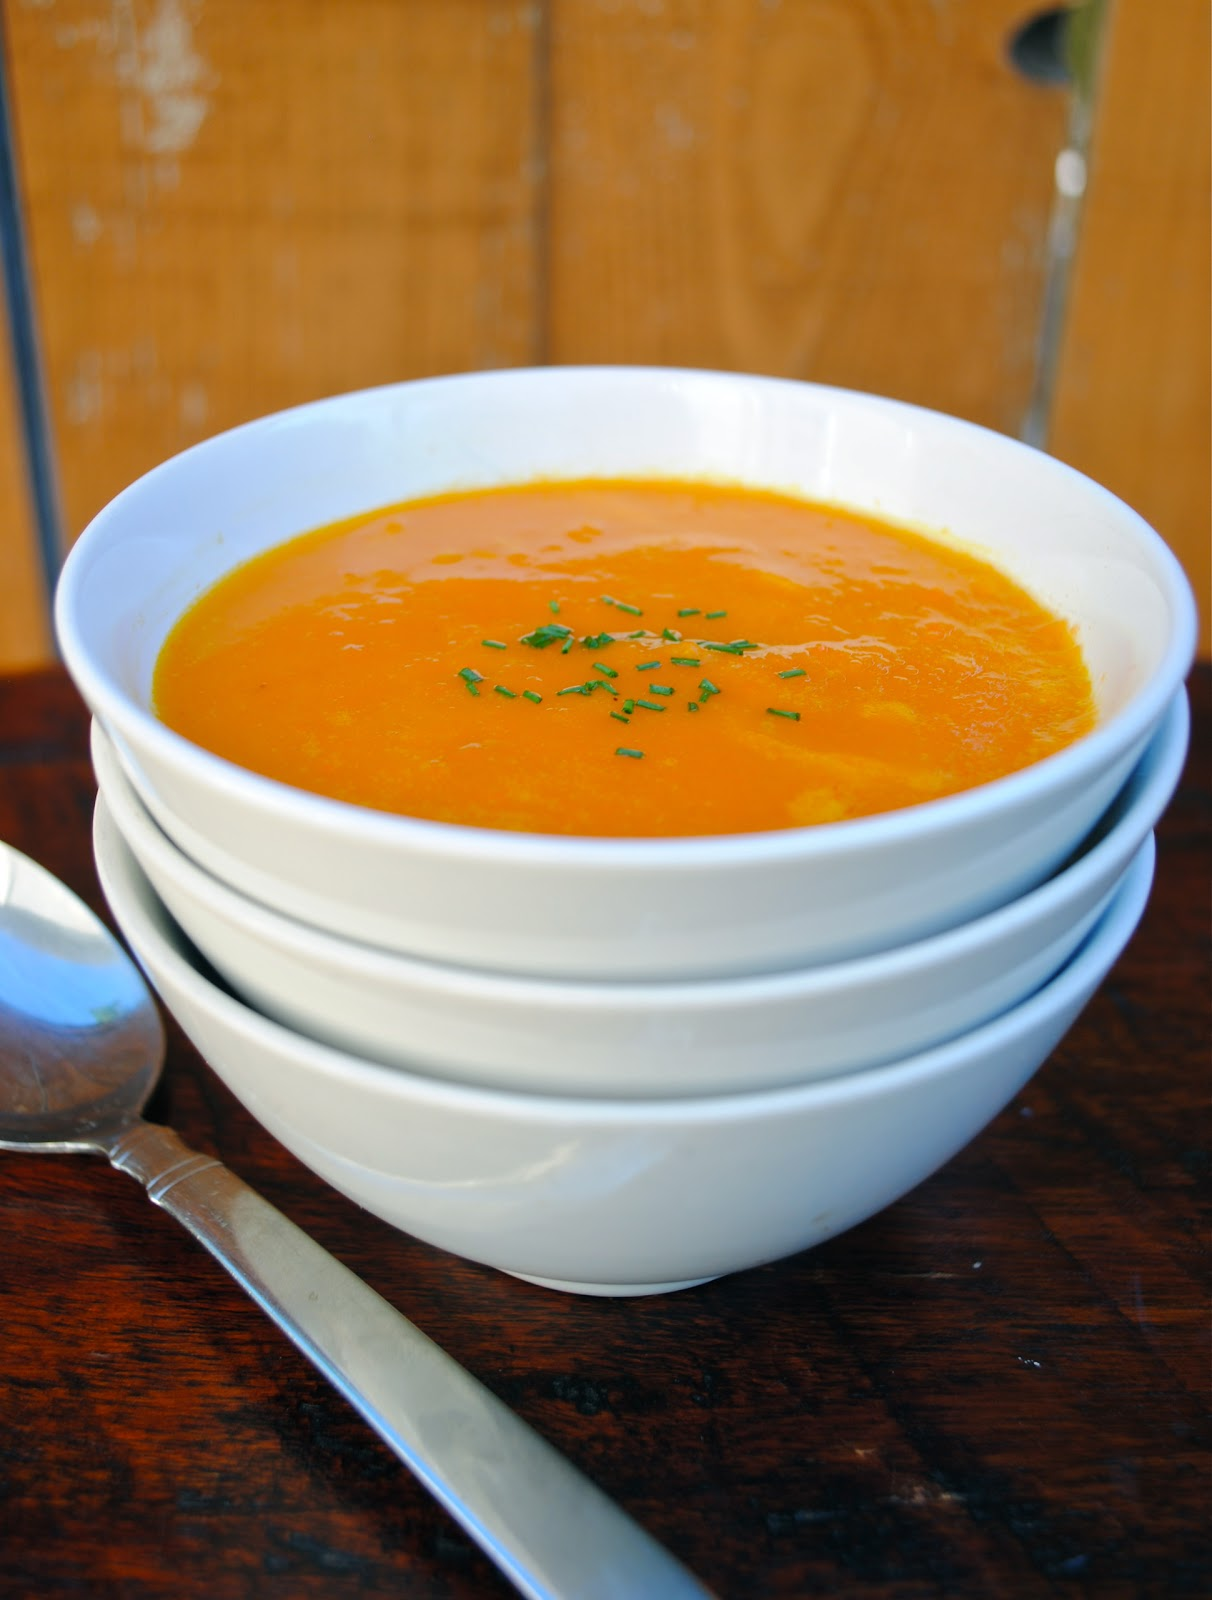 ... Soup | Virtually Homemade: The Silver Palate's Carrot and Orange Soup